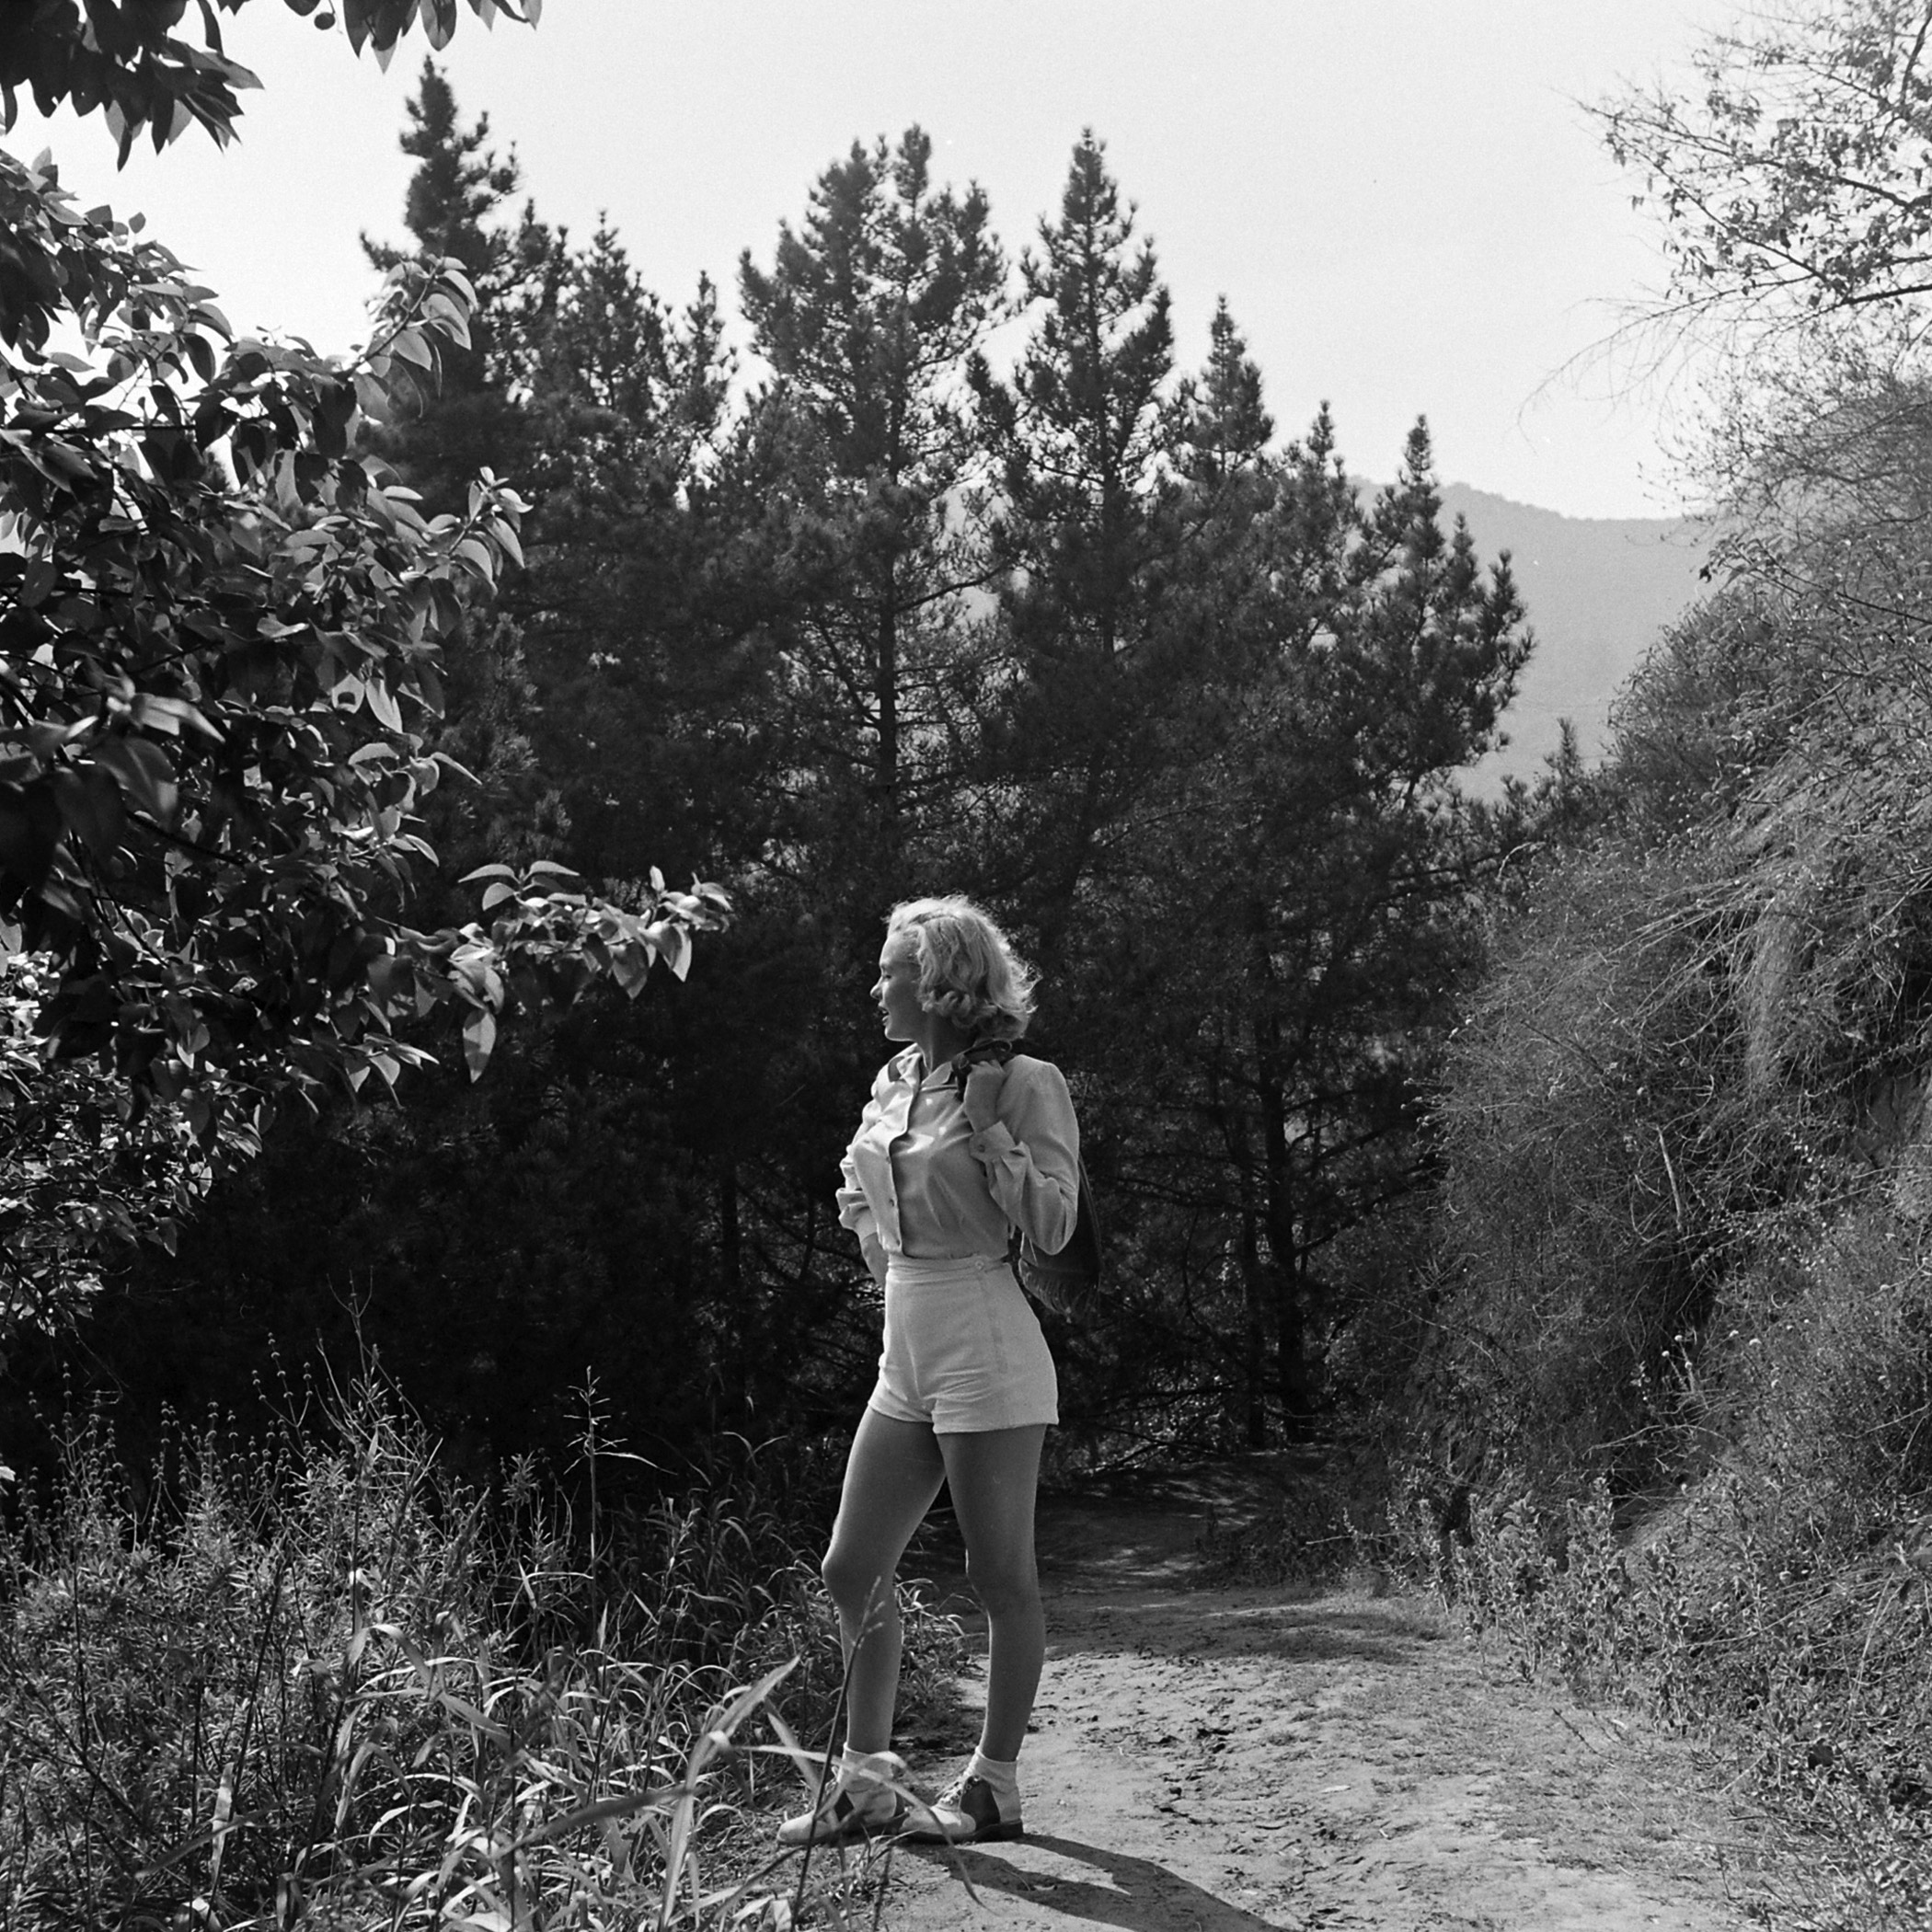 Marilyn Monroe in Griffith Park, Los Angeles, California, 1950.